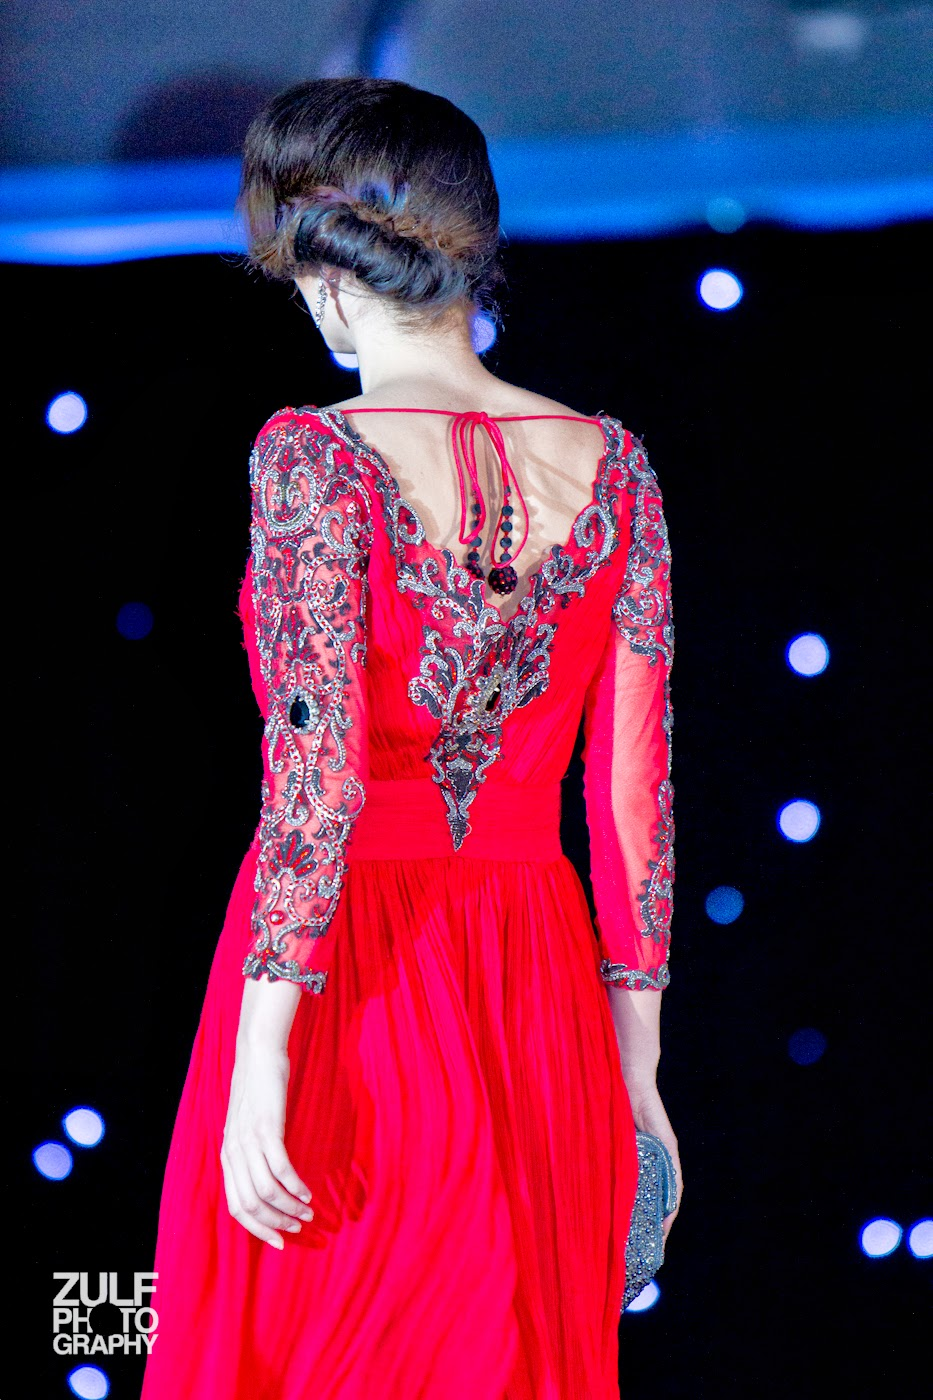 Zulf Photography Couture Catwalk Asiana